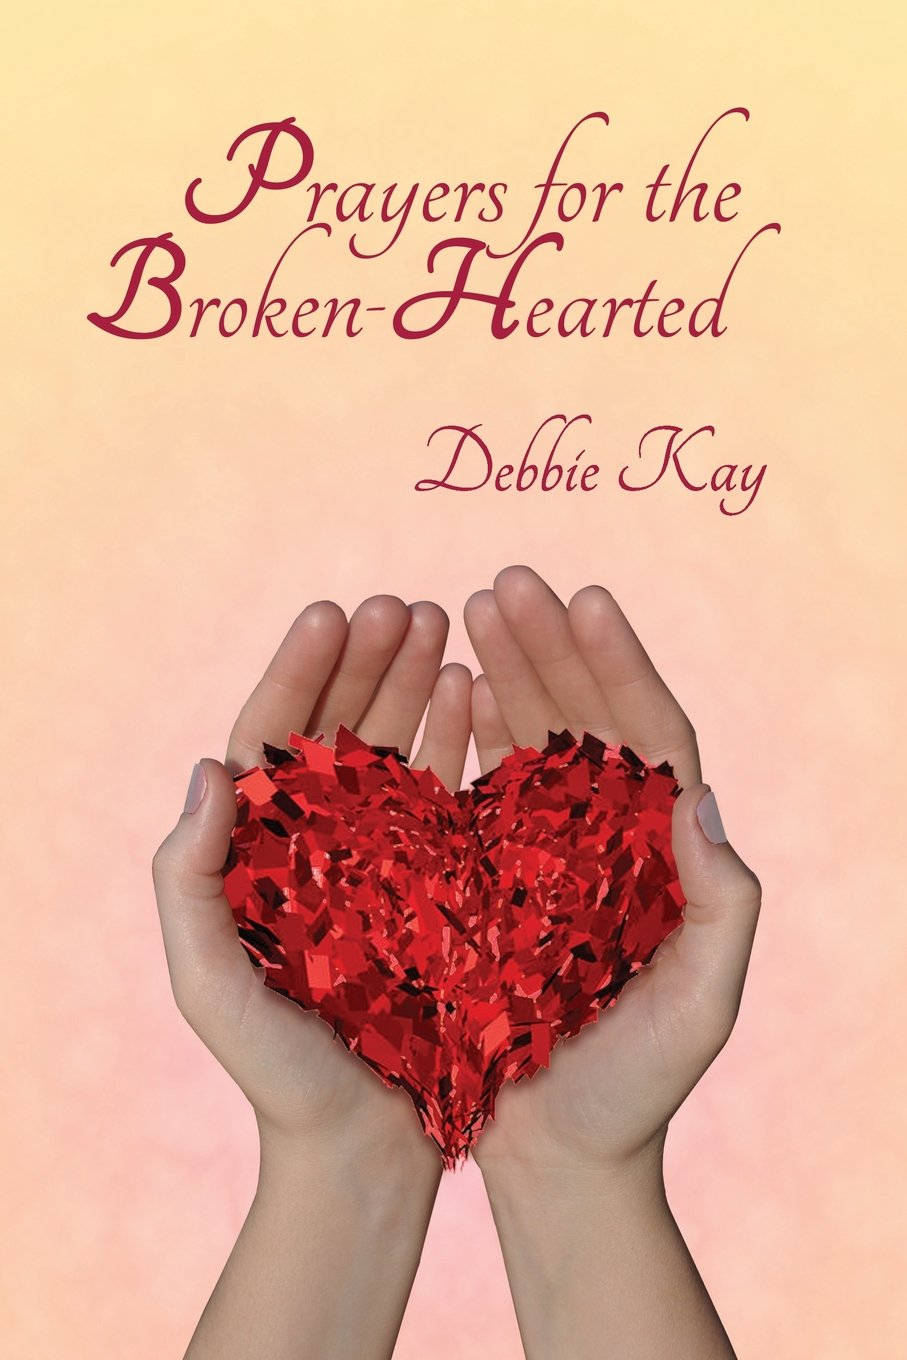 Prayers for the Broken-Hearted by Debbie Kay